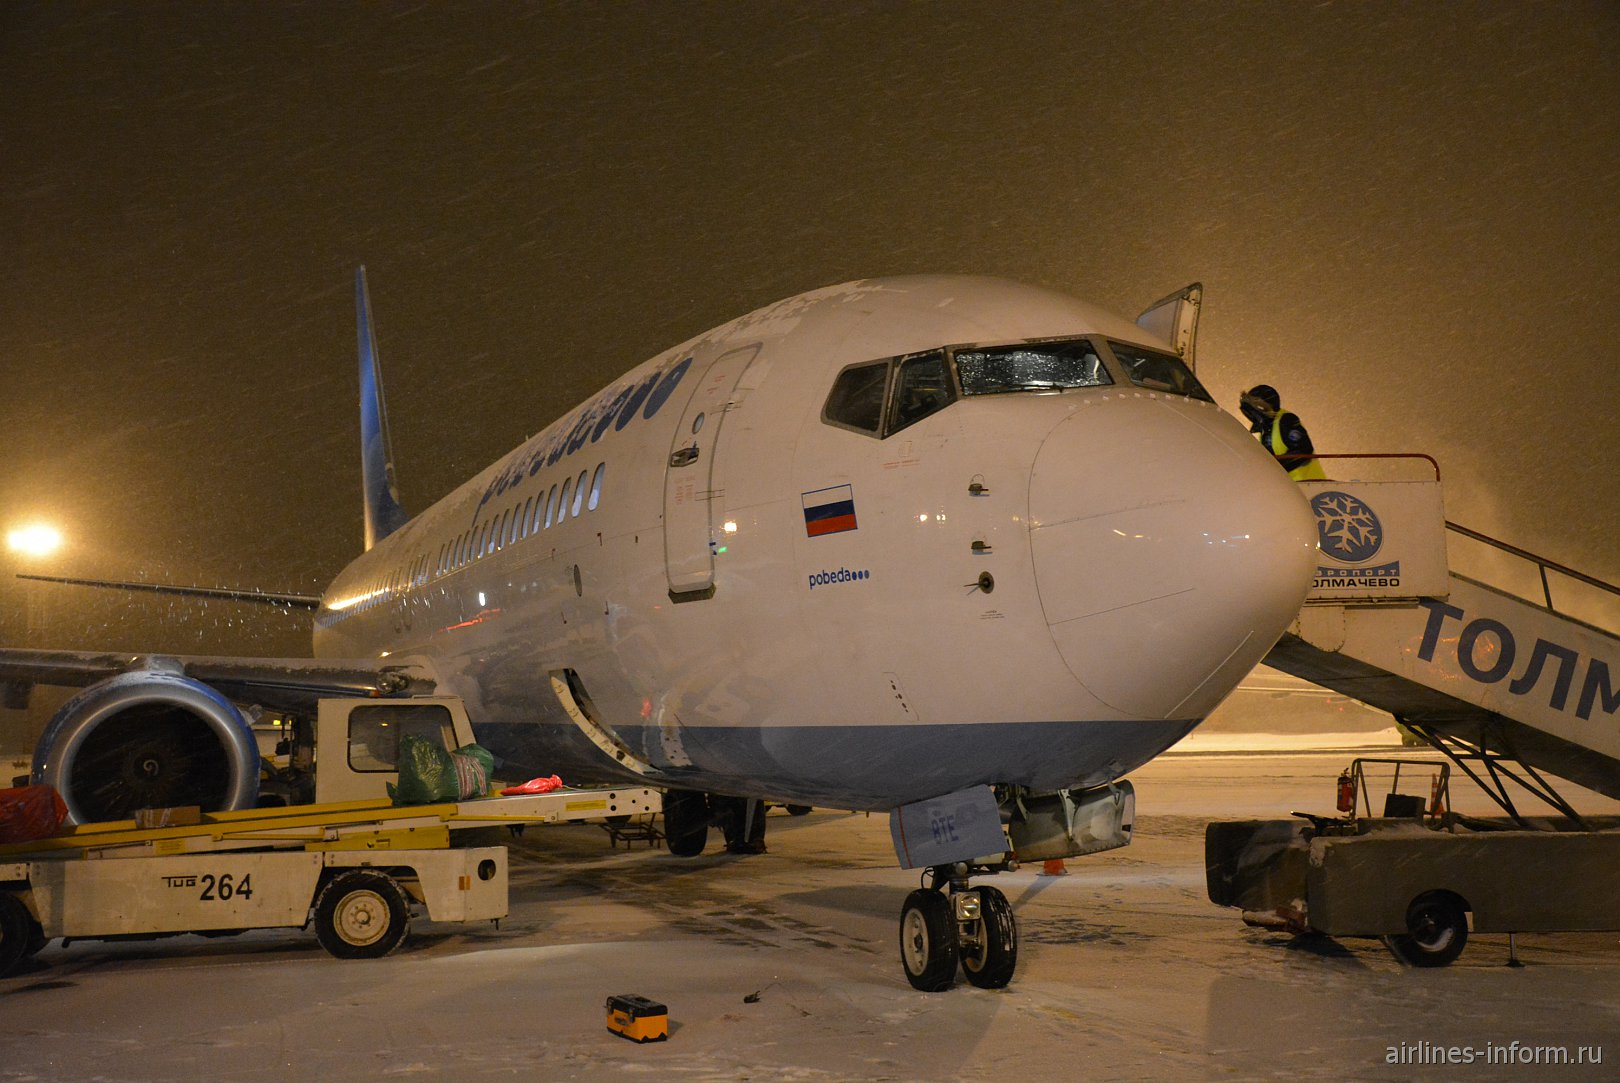 Russian low-cost. VKO - OVB